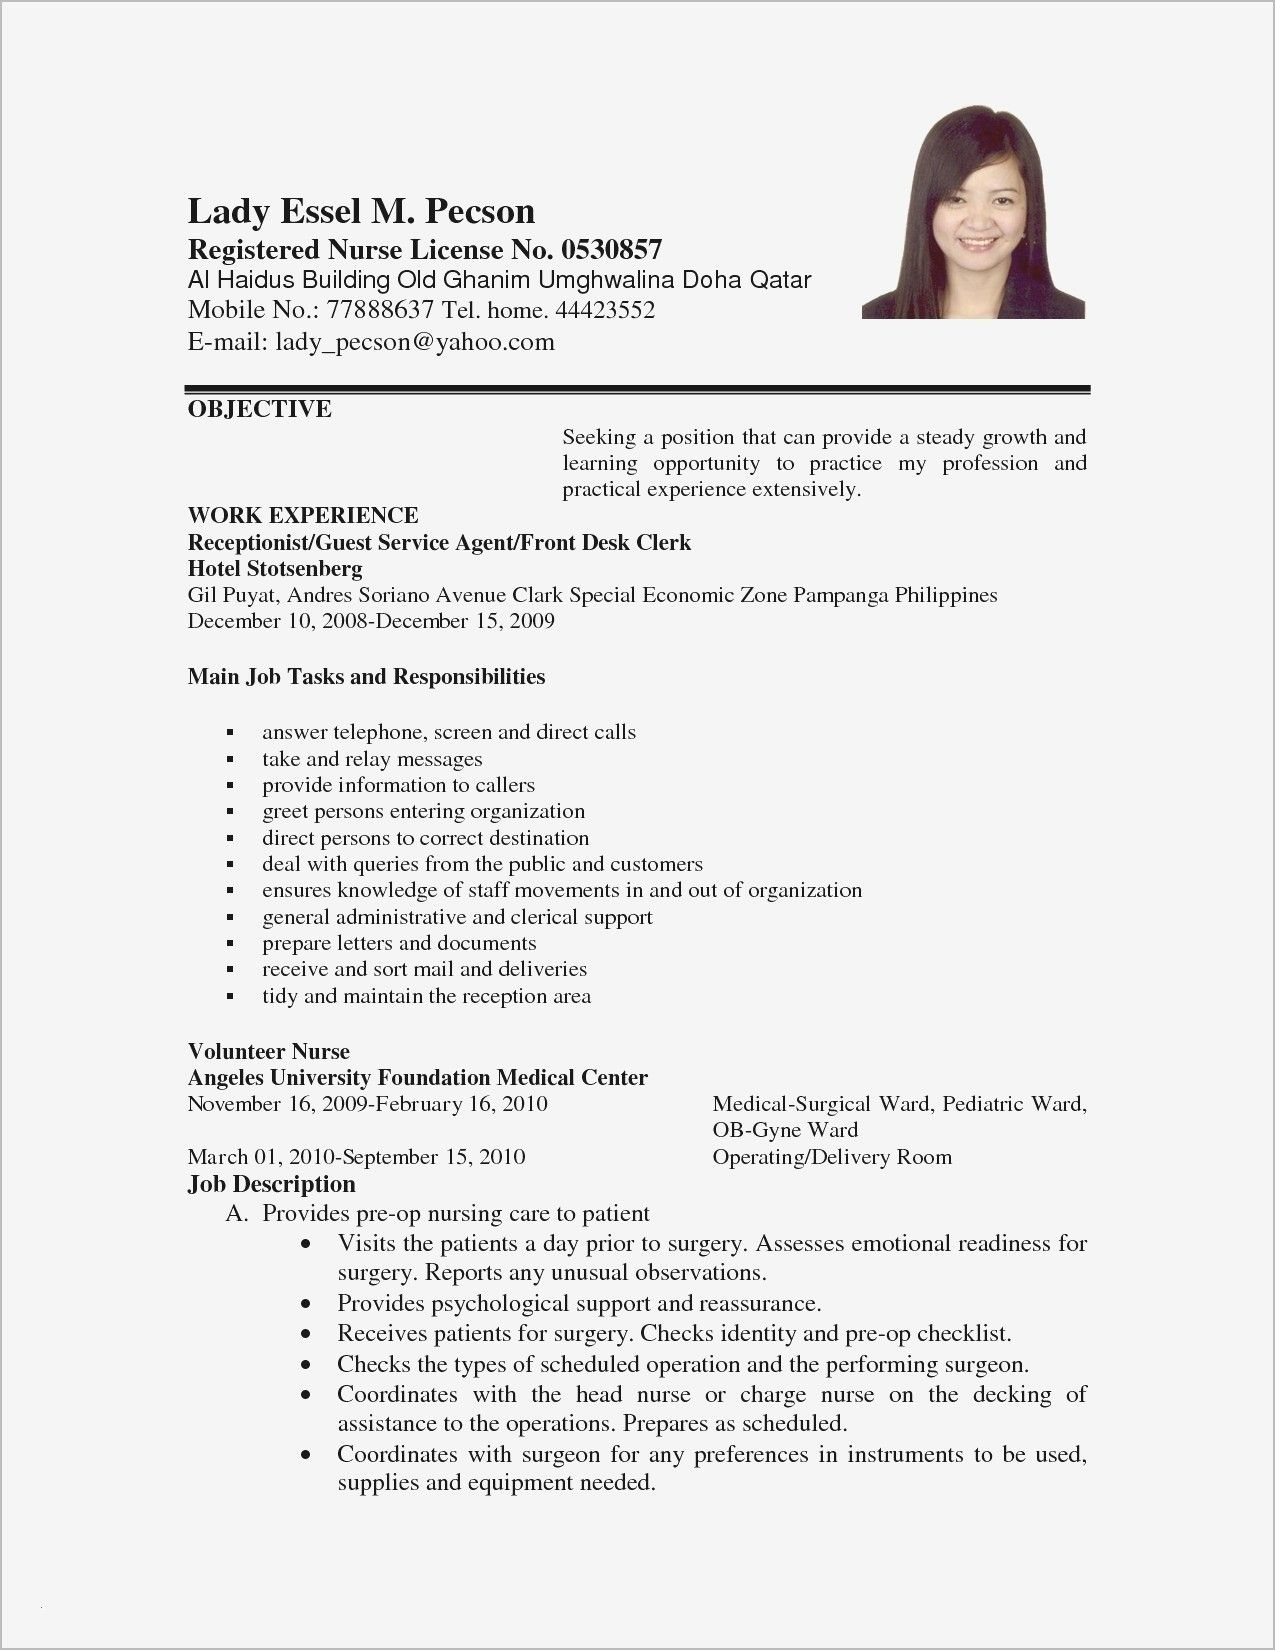 Download New Sample Resume Letter For Job Lettersample Letterformat Resumesample Resumeformat Job Resume Examples Cover Letter For Resume Resume Skills